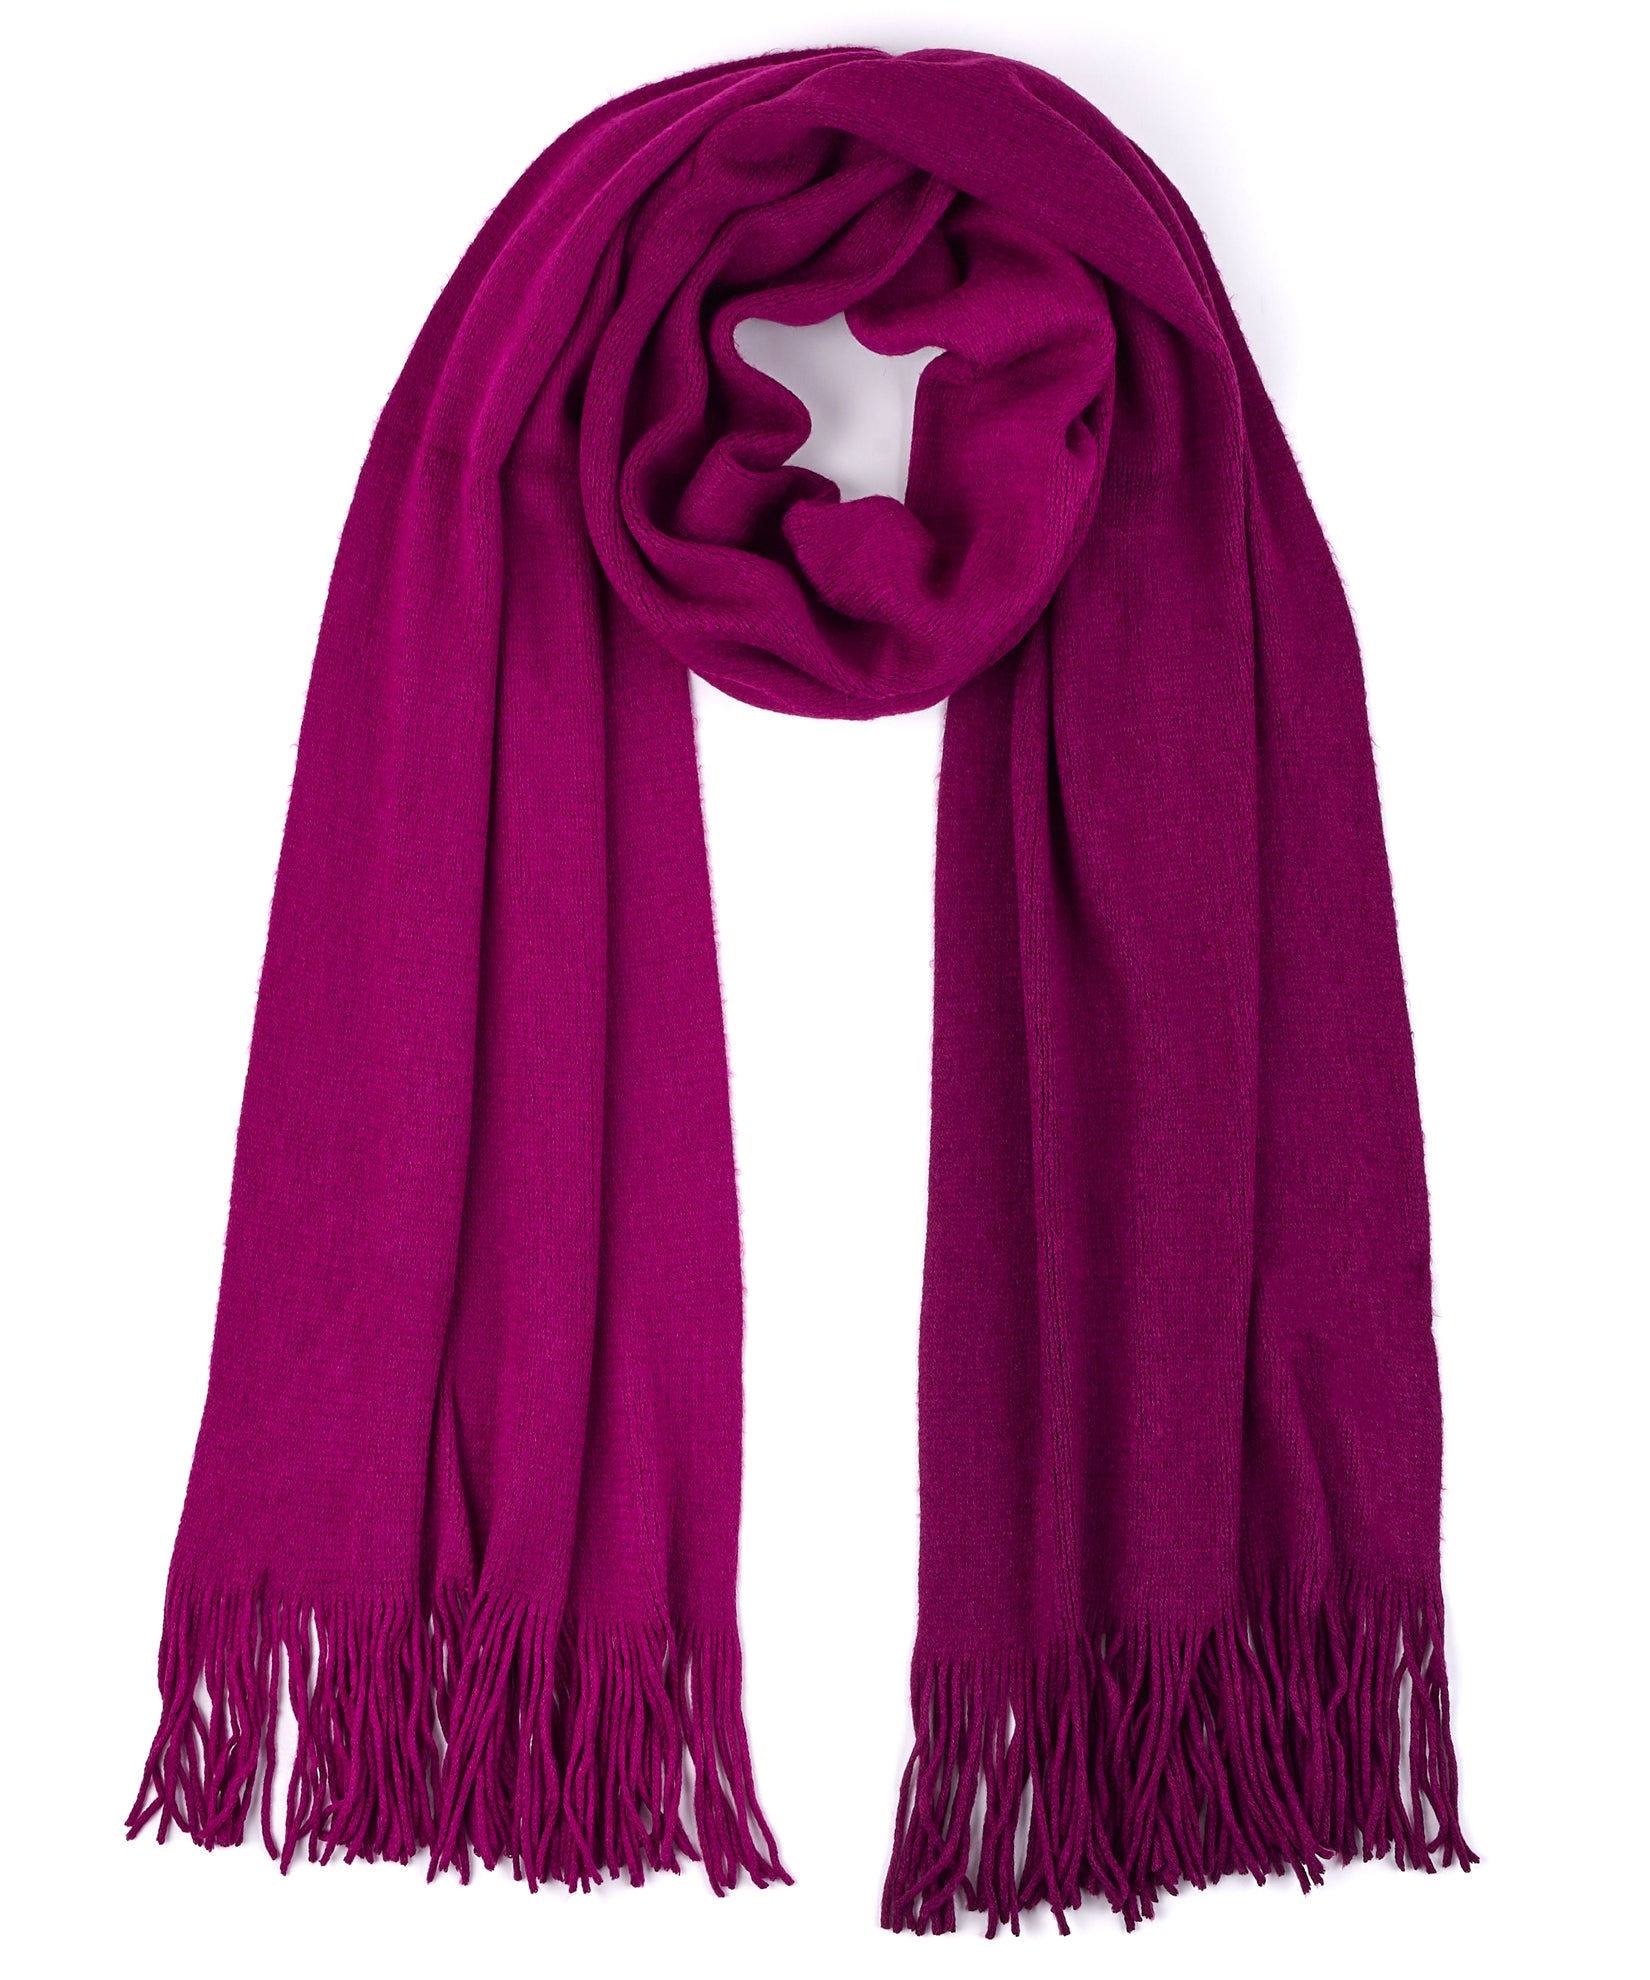 Indian Rose - Ombre Milk Muffler